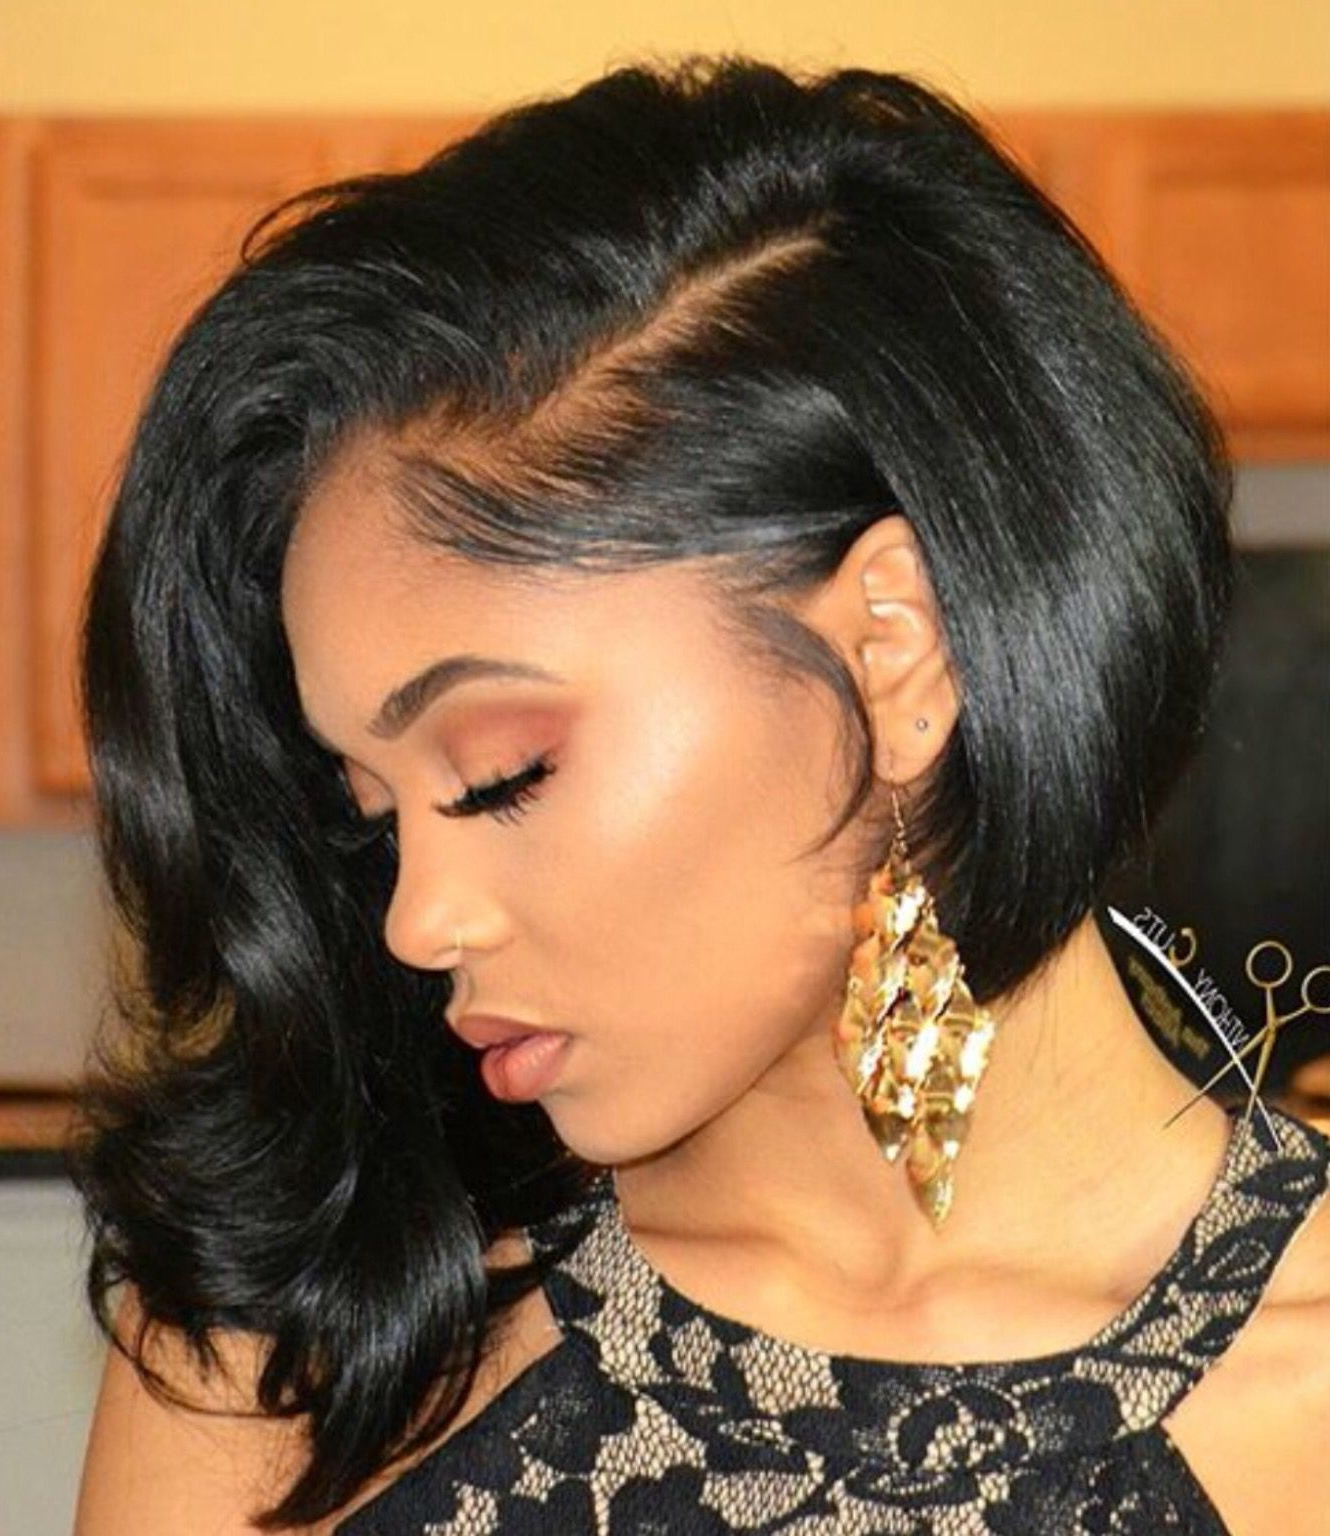 15 Curly Weave Hairstyles For Long And Short Hair Types | Hairstyles Inside Bouncy Curly Black Bob Hairstyles (View 5 of 25)